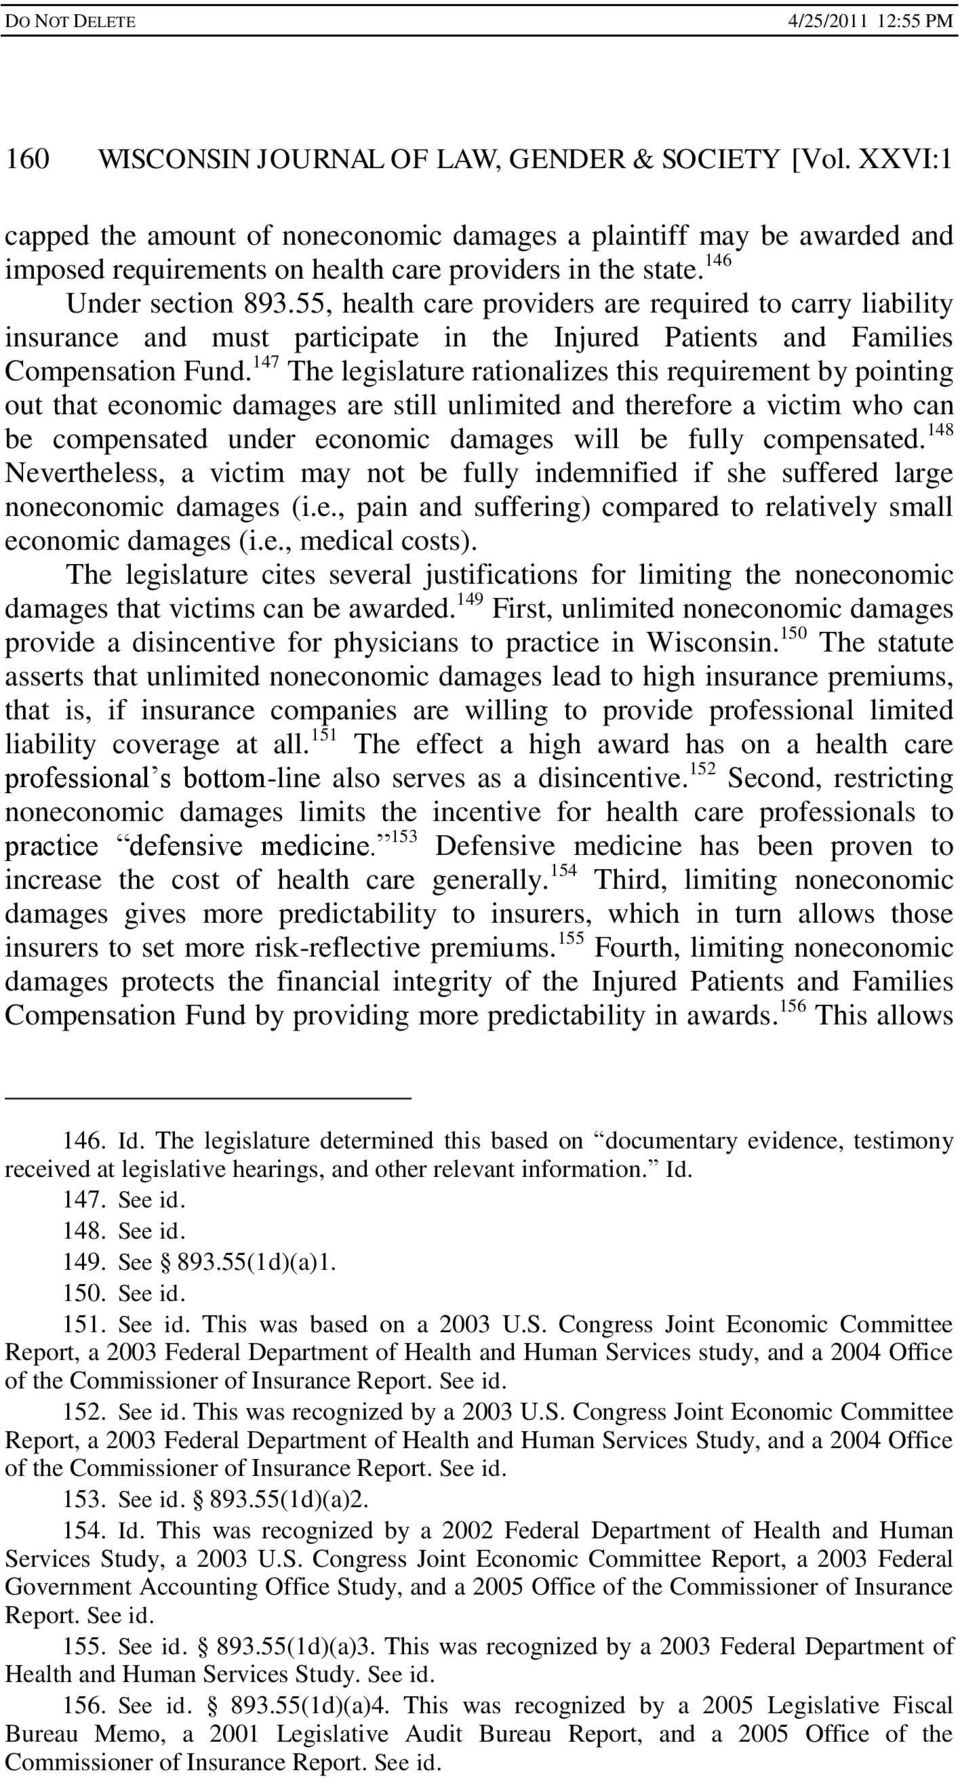 147 The legislature rationalizes this requirement by pointing out that economic damages are still unlimited and therefore a victim who can be compensated under economic damages will be fully